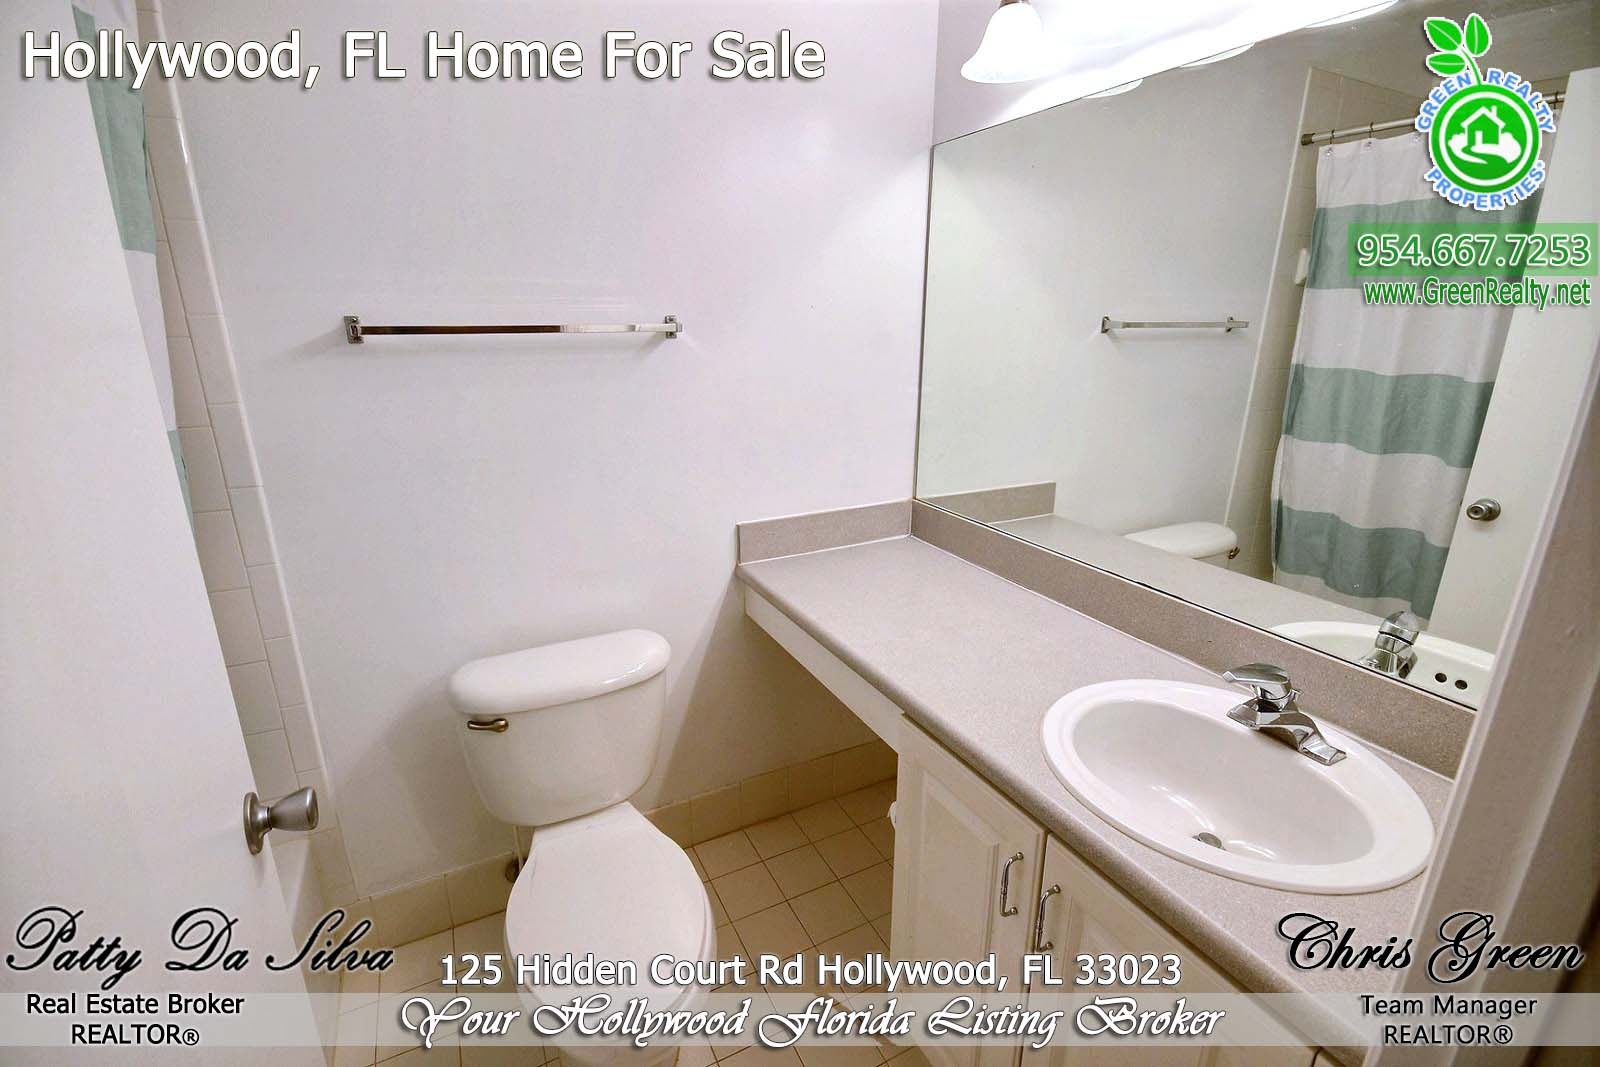 16 Hollywood Florida REALTORS (1)